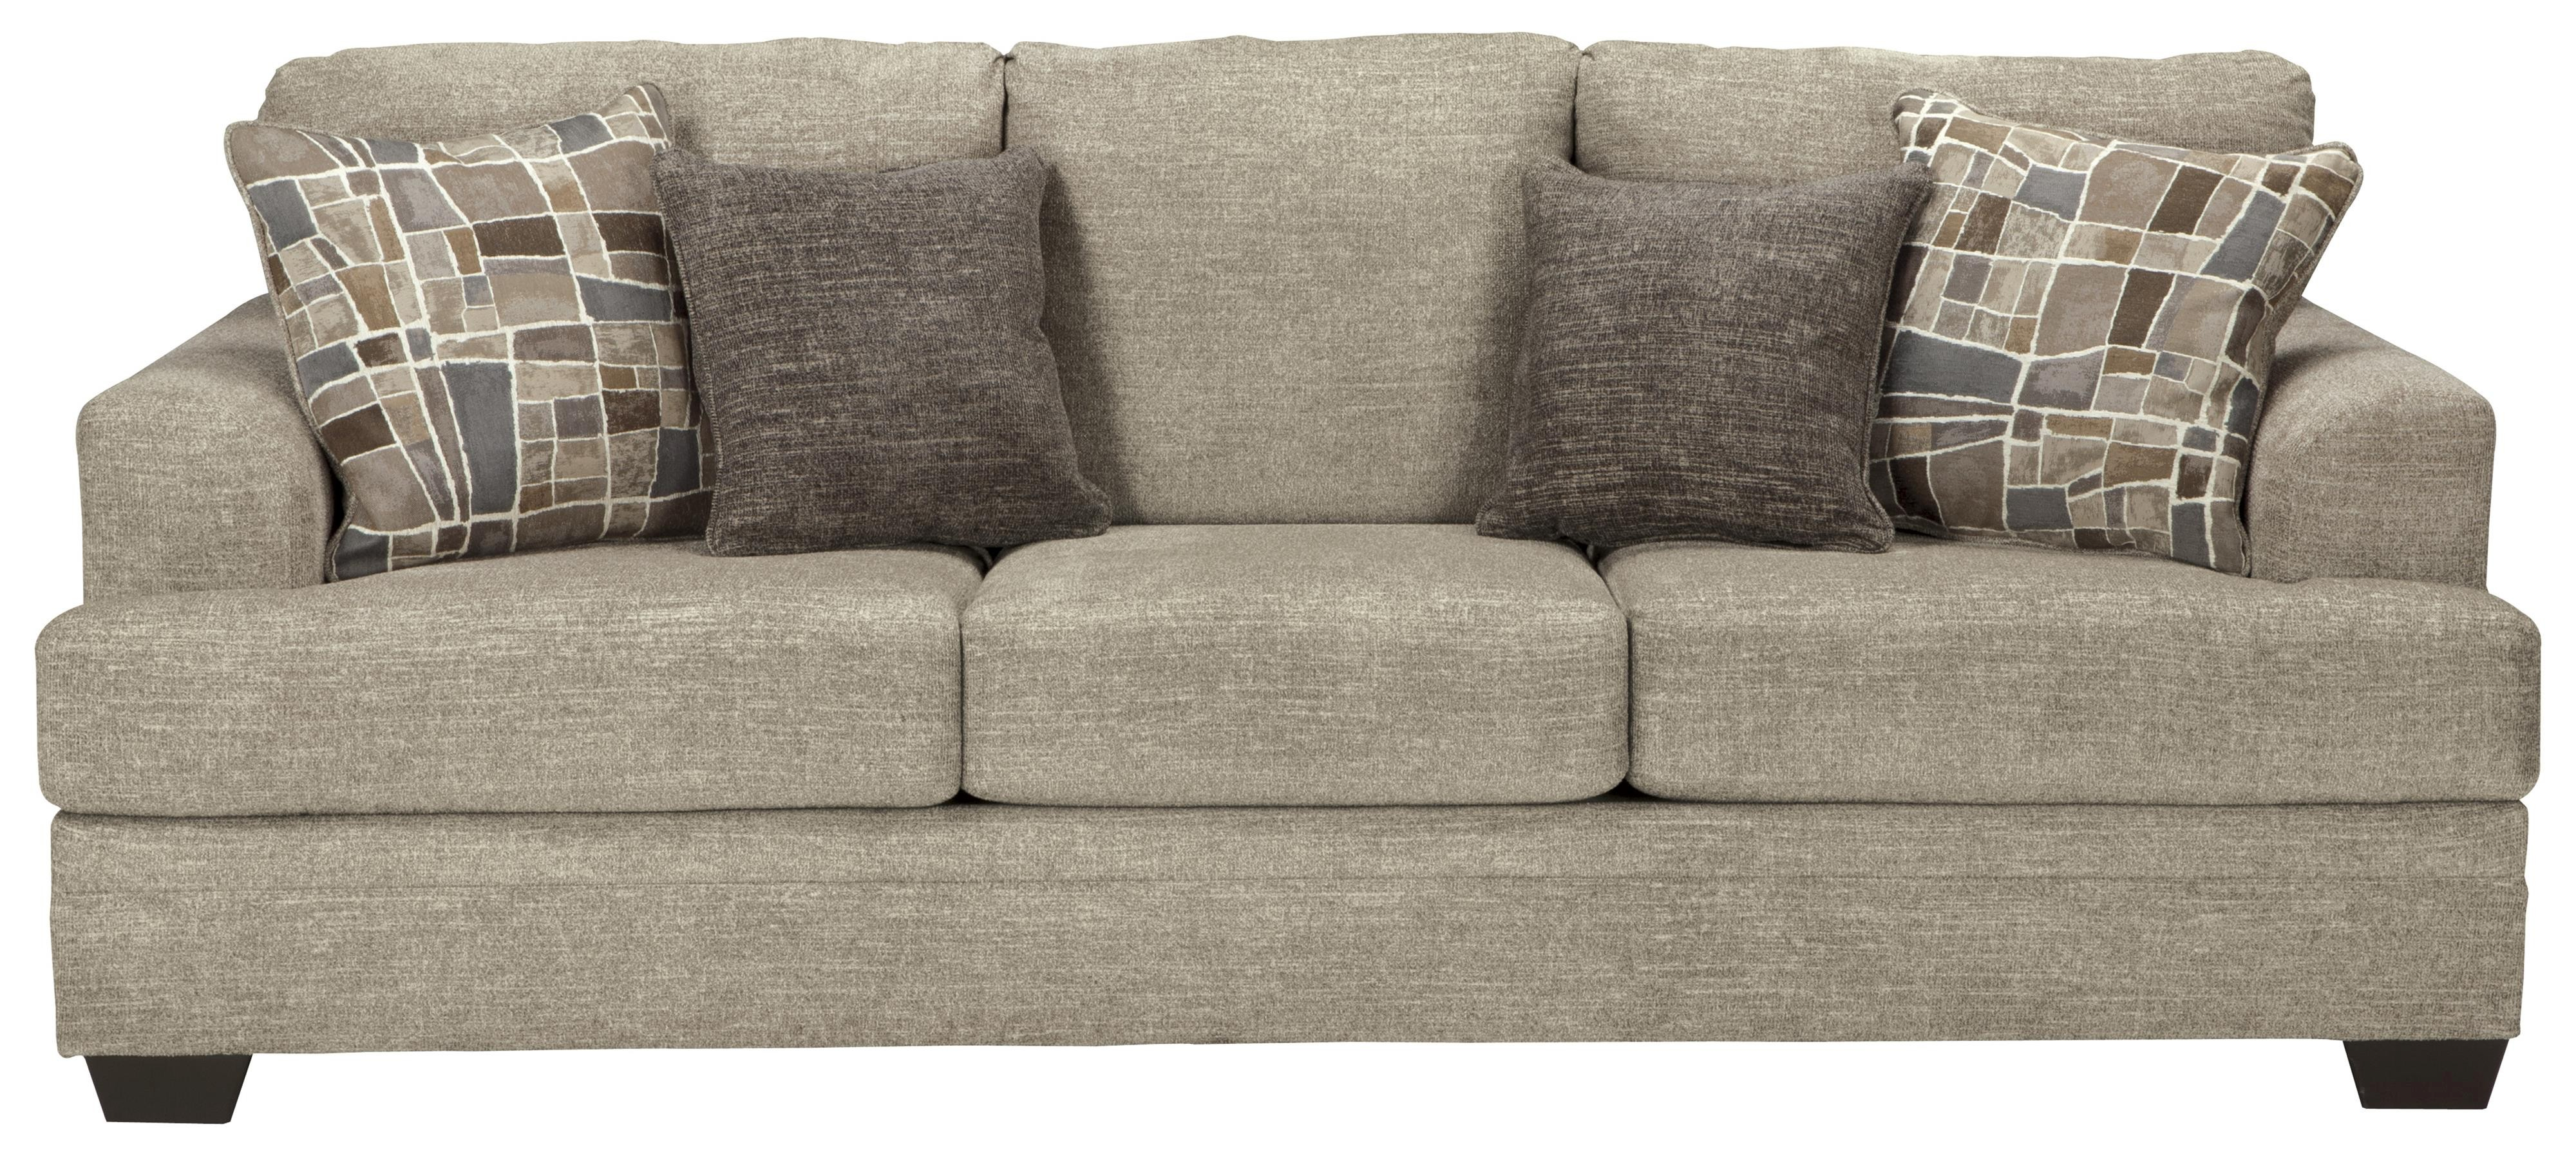 Queen sofa Bed Lovely Benchcraft Barrish Contemporary Queen sofa Sleeper with Flared Portrait